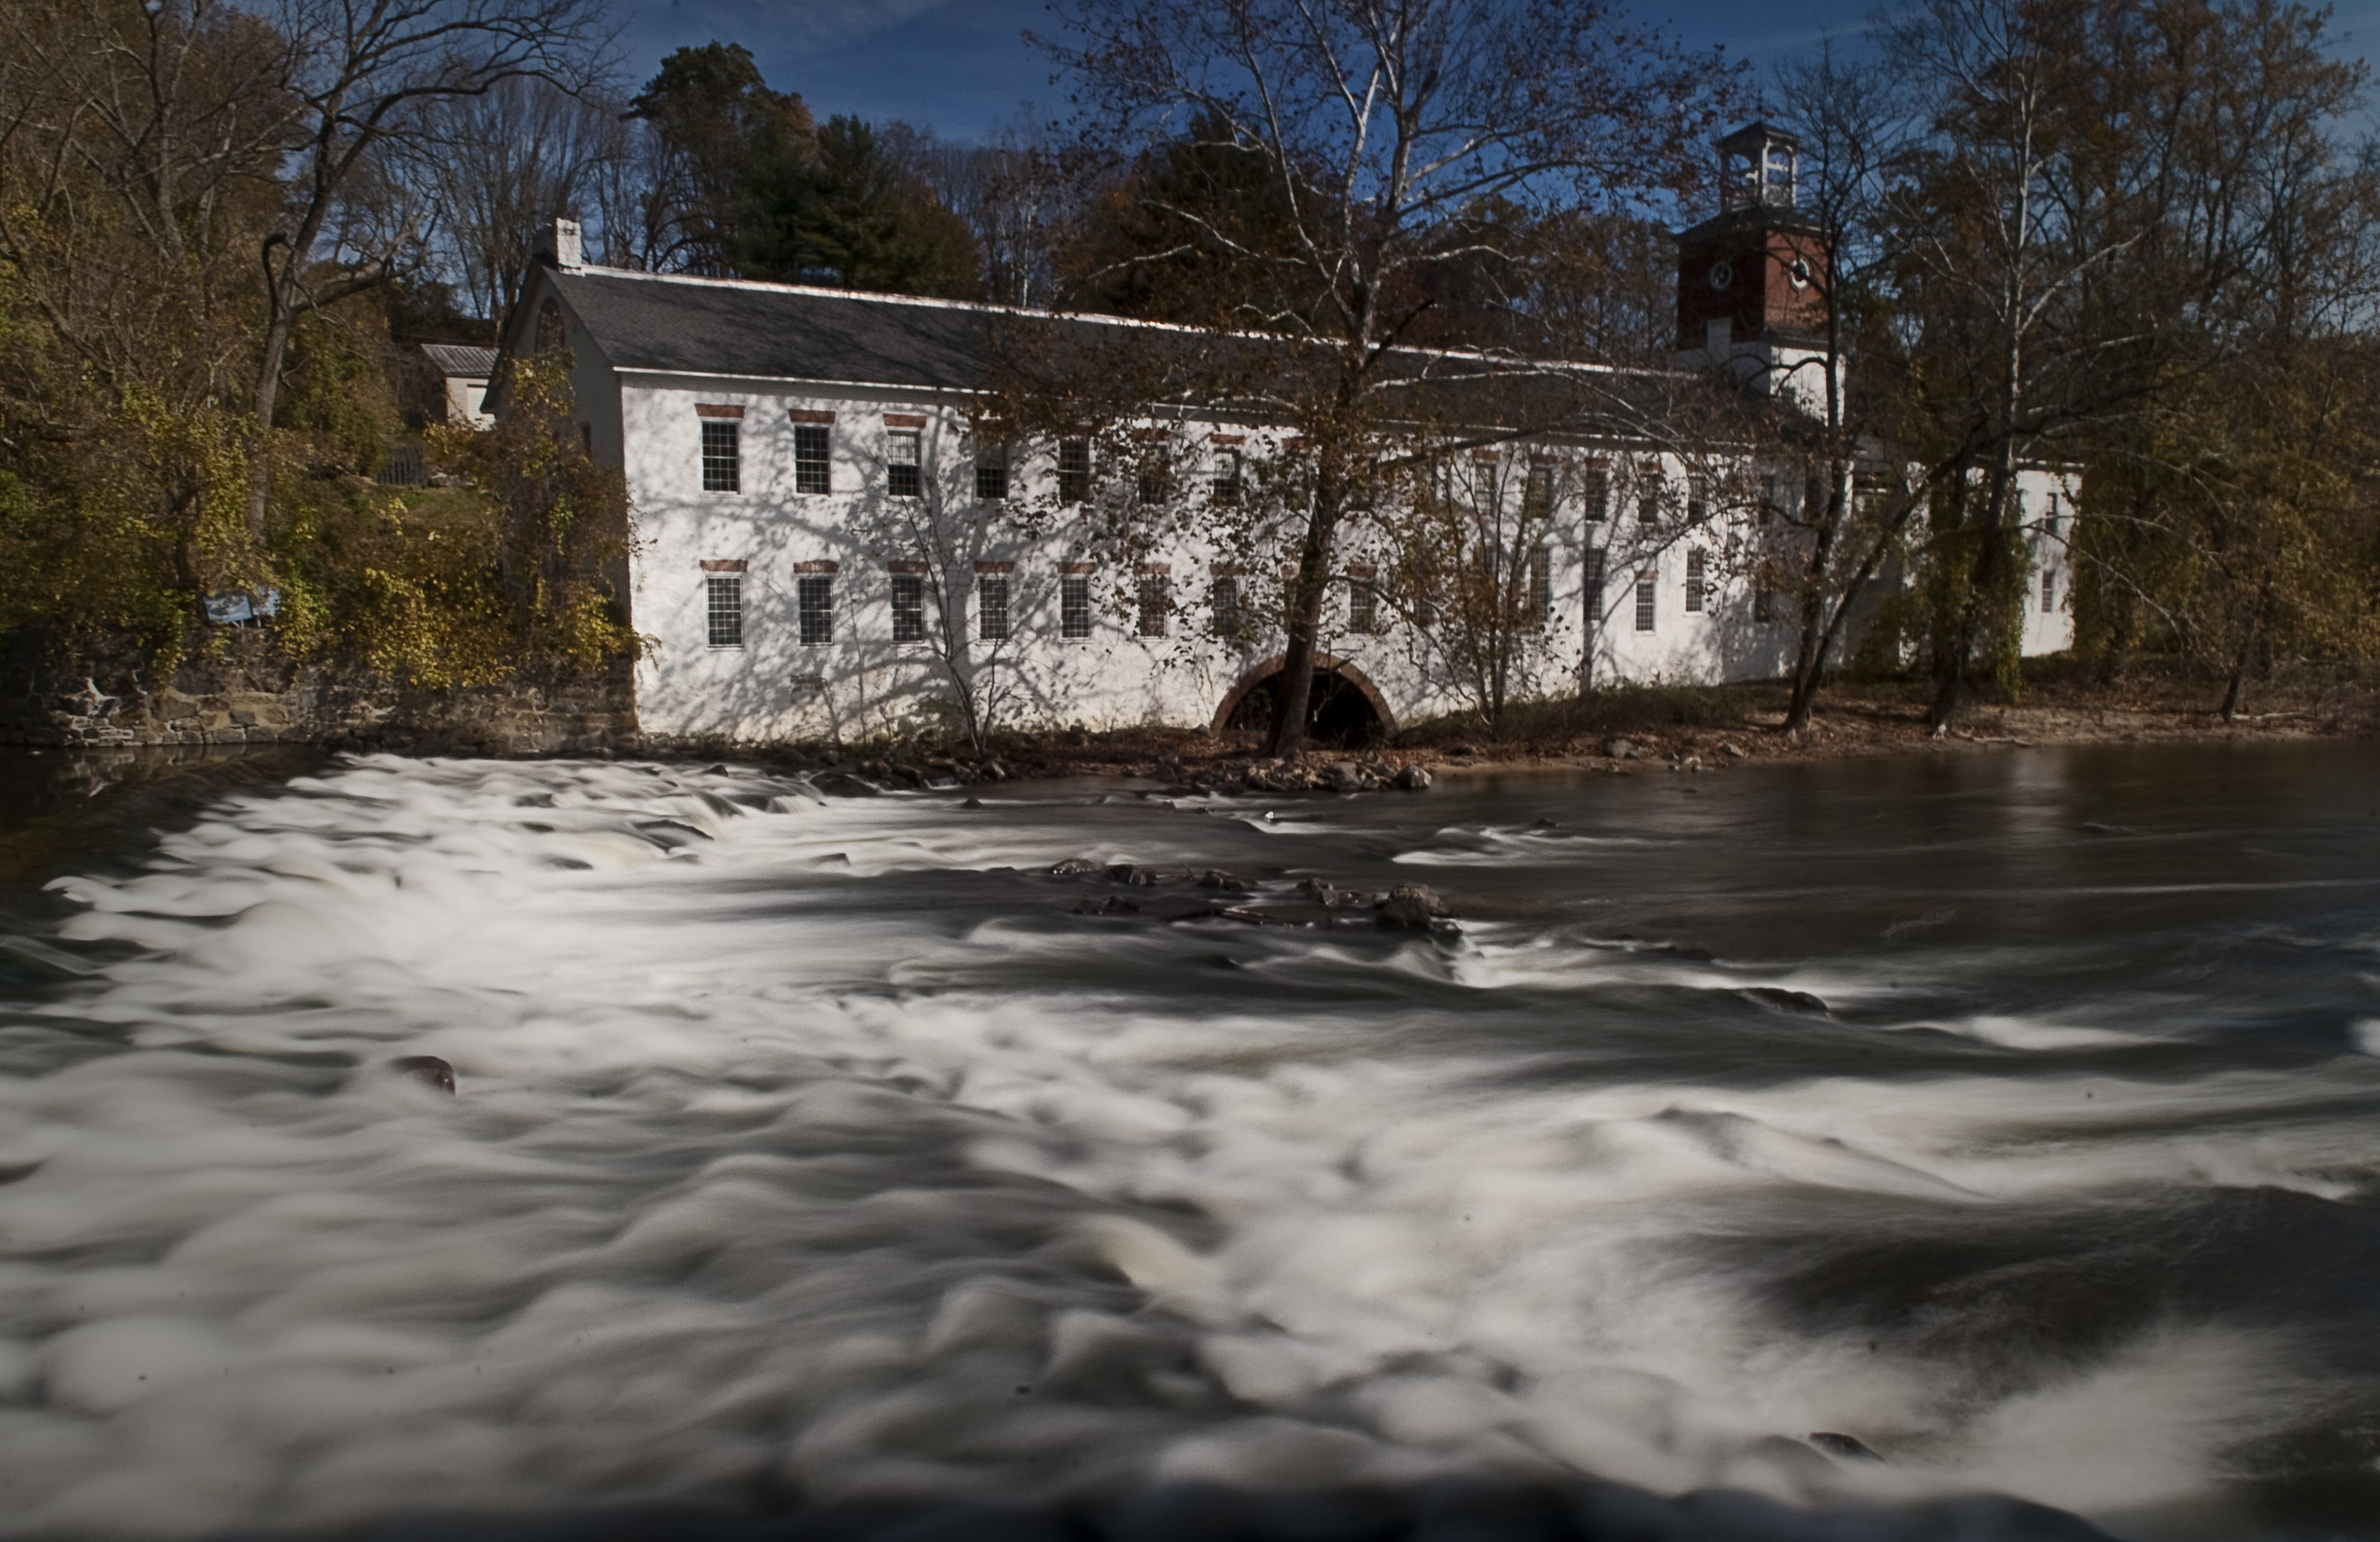 Walker's Mill on the Brandywine River